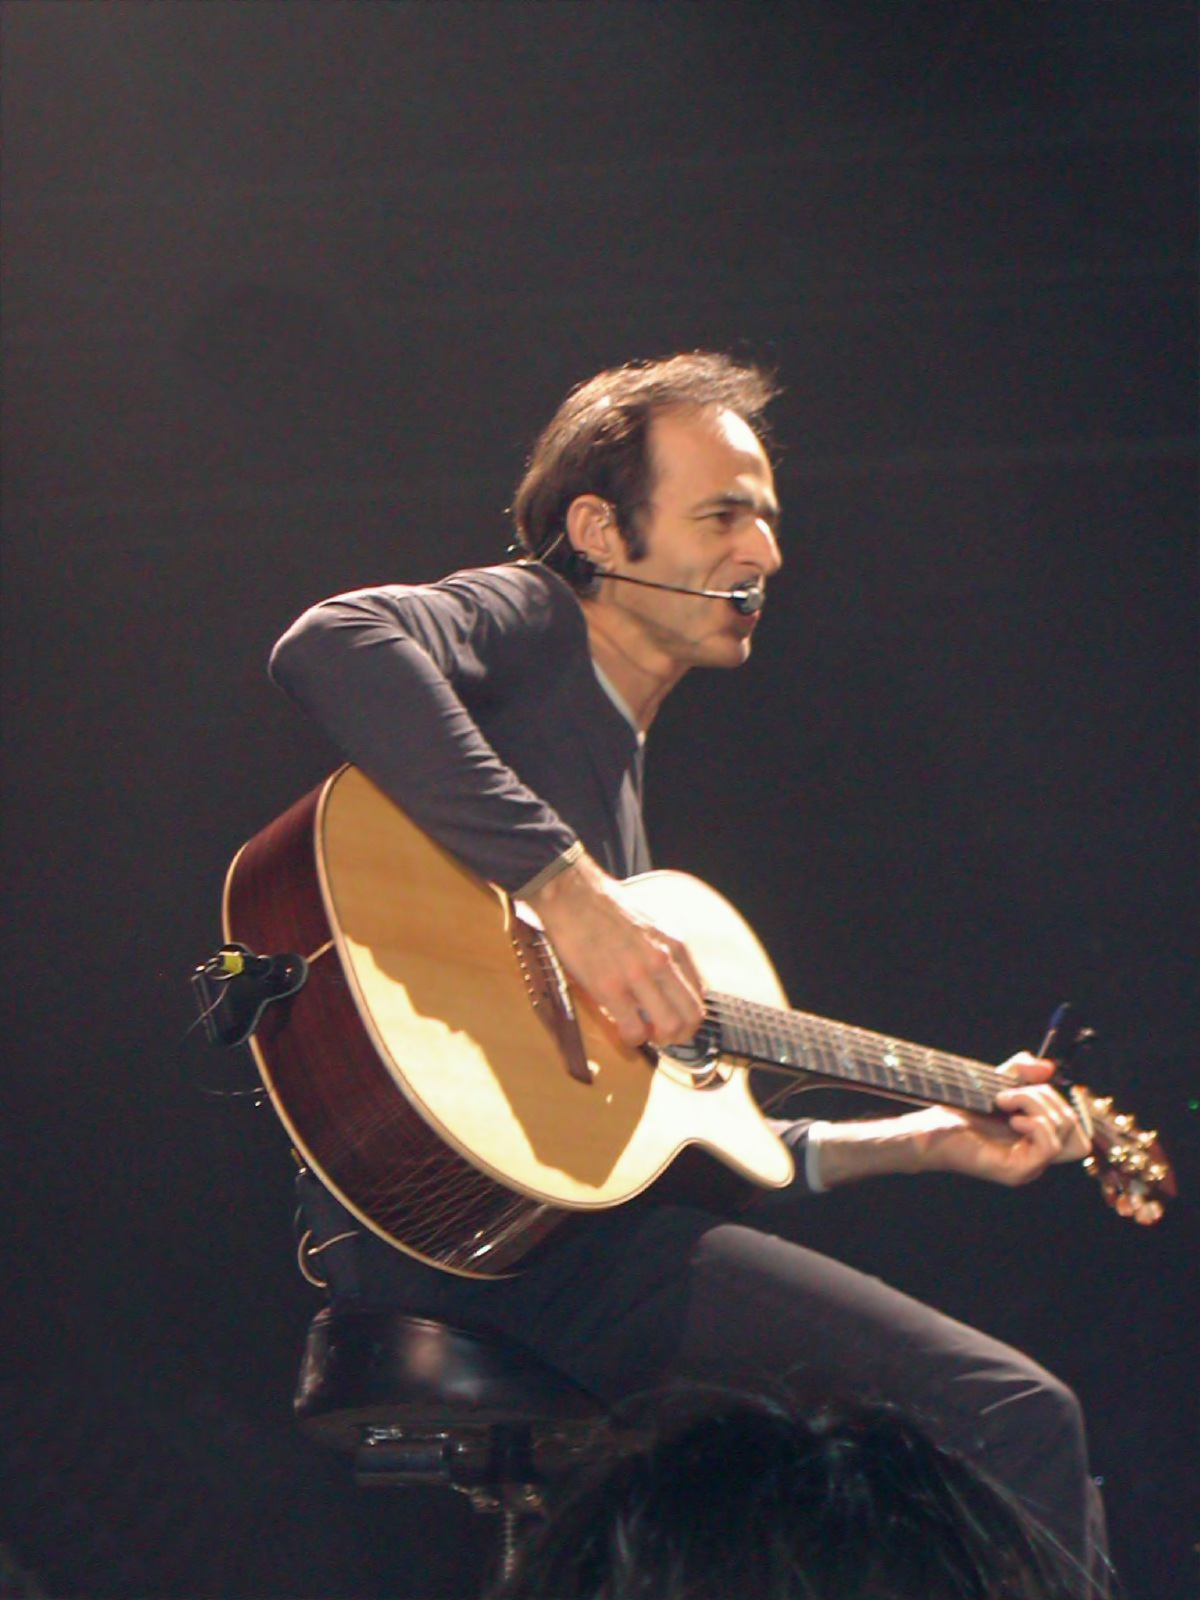 Jean Jacques Goldman Singulier Uptobox : jacques, goldman, singulier, uptobox, Jean-Jacques, Goldman, Wikipedia